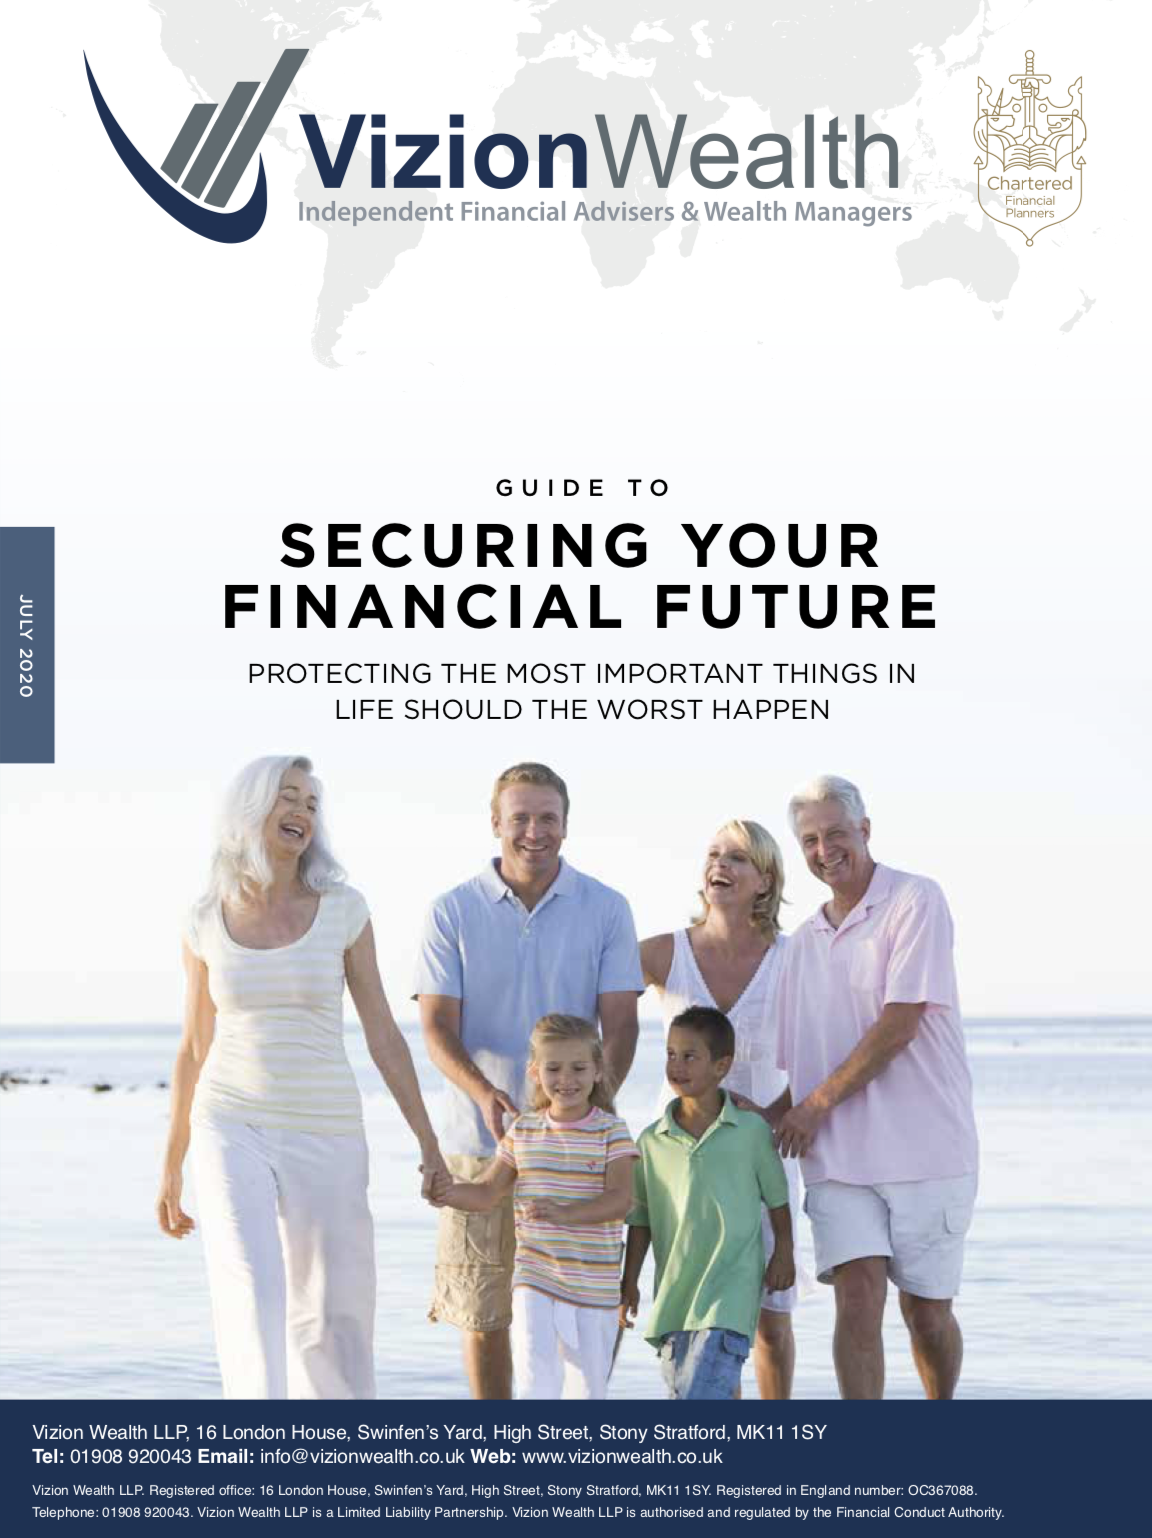 Visit our Digital Library to download our FREE personal finance magazines and financial guides